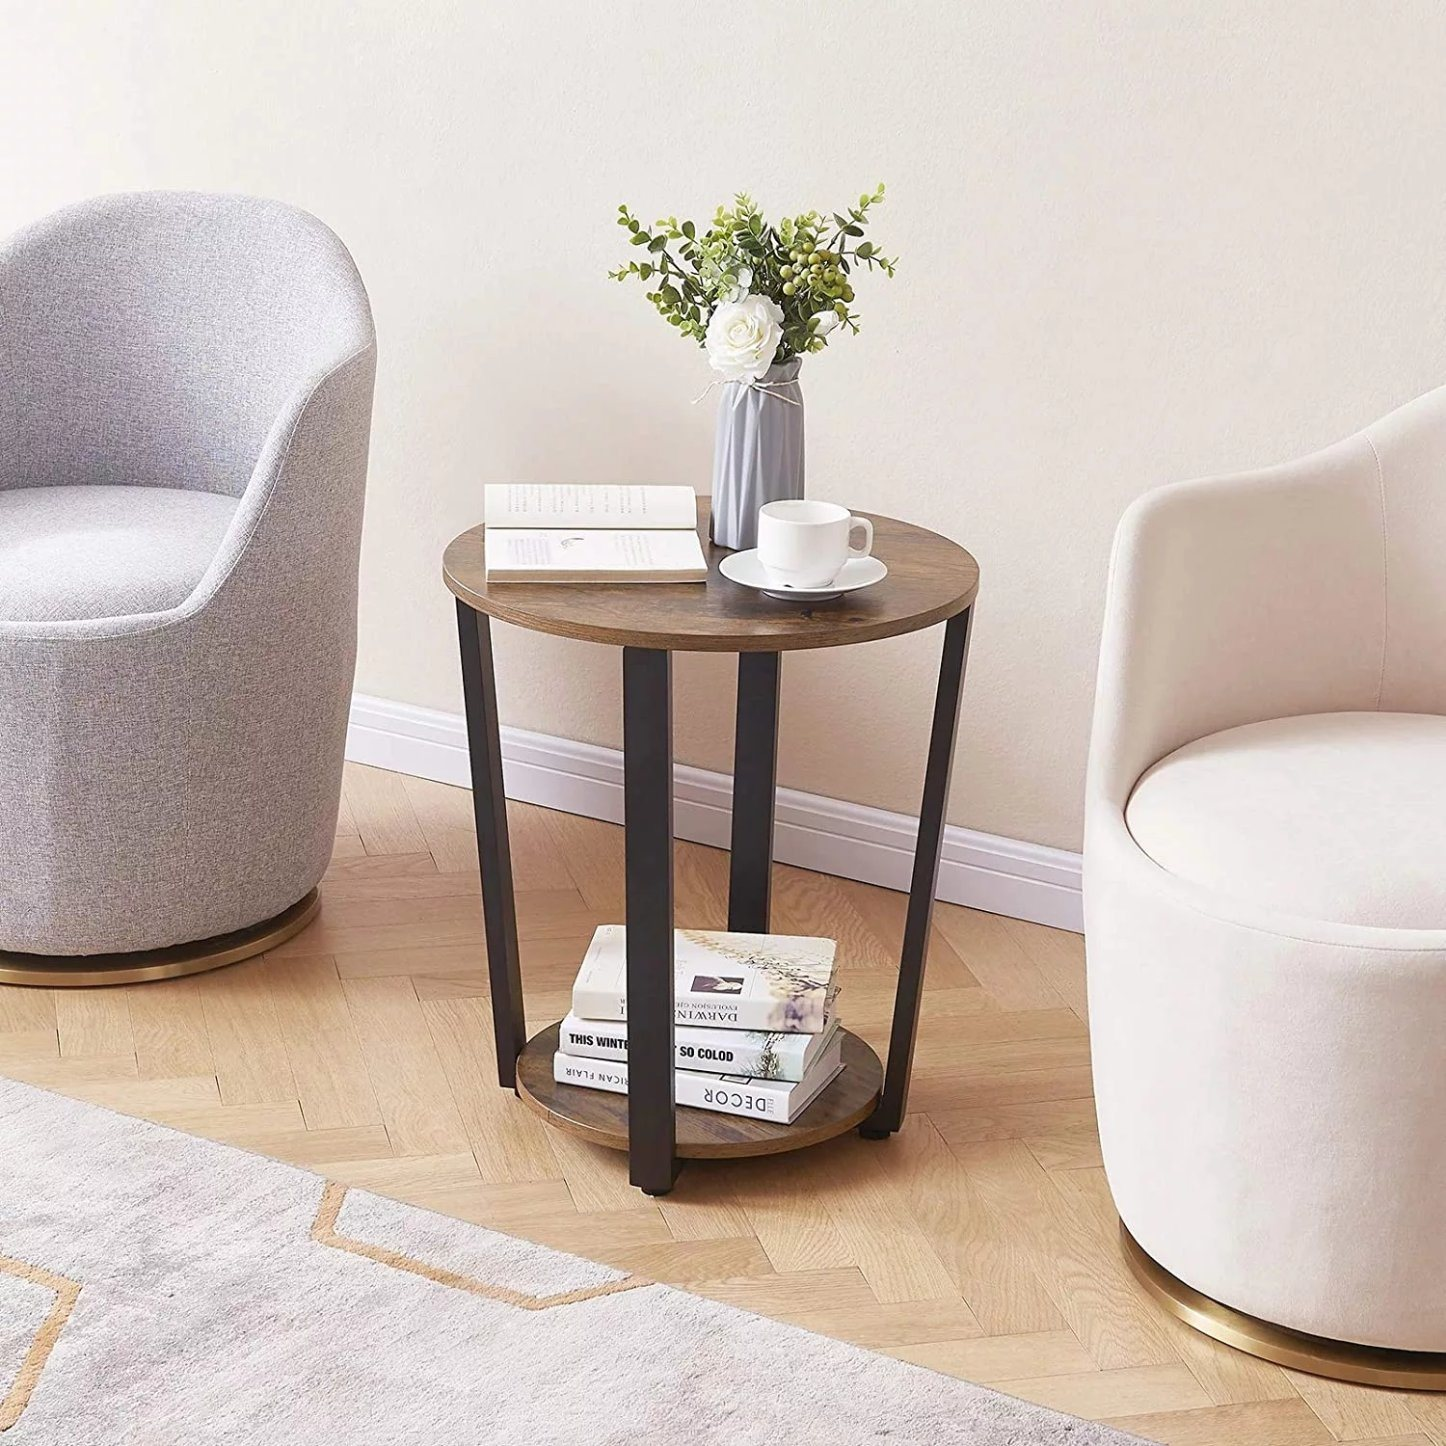 2 Tier Small Sofa Couch Table, Small Round End Table With Drawer